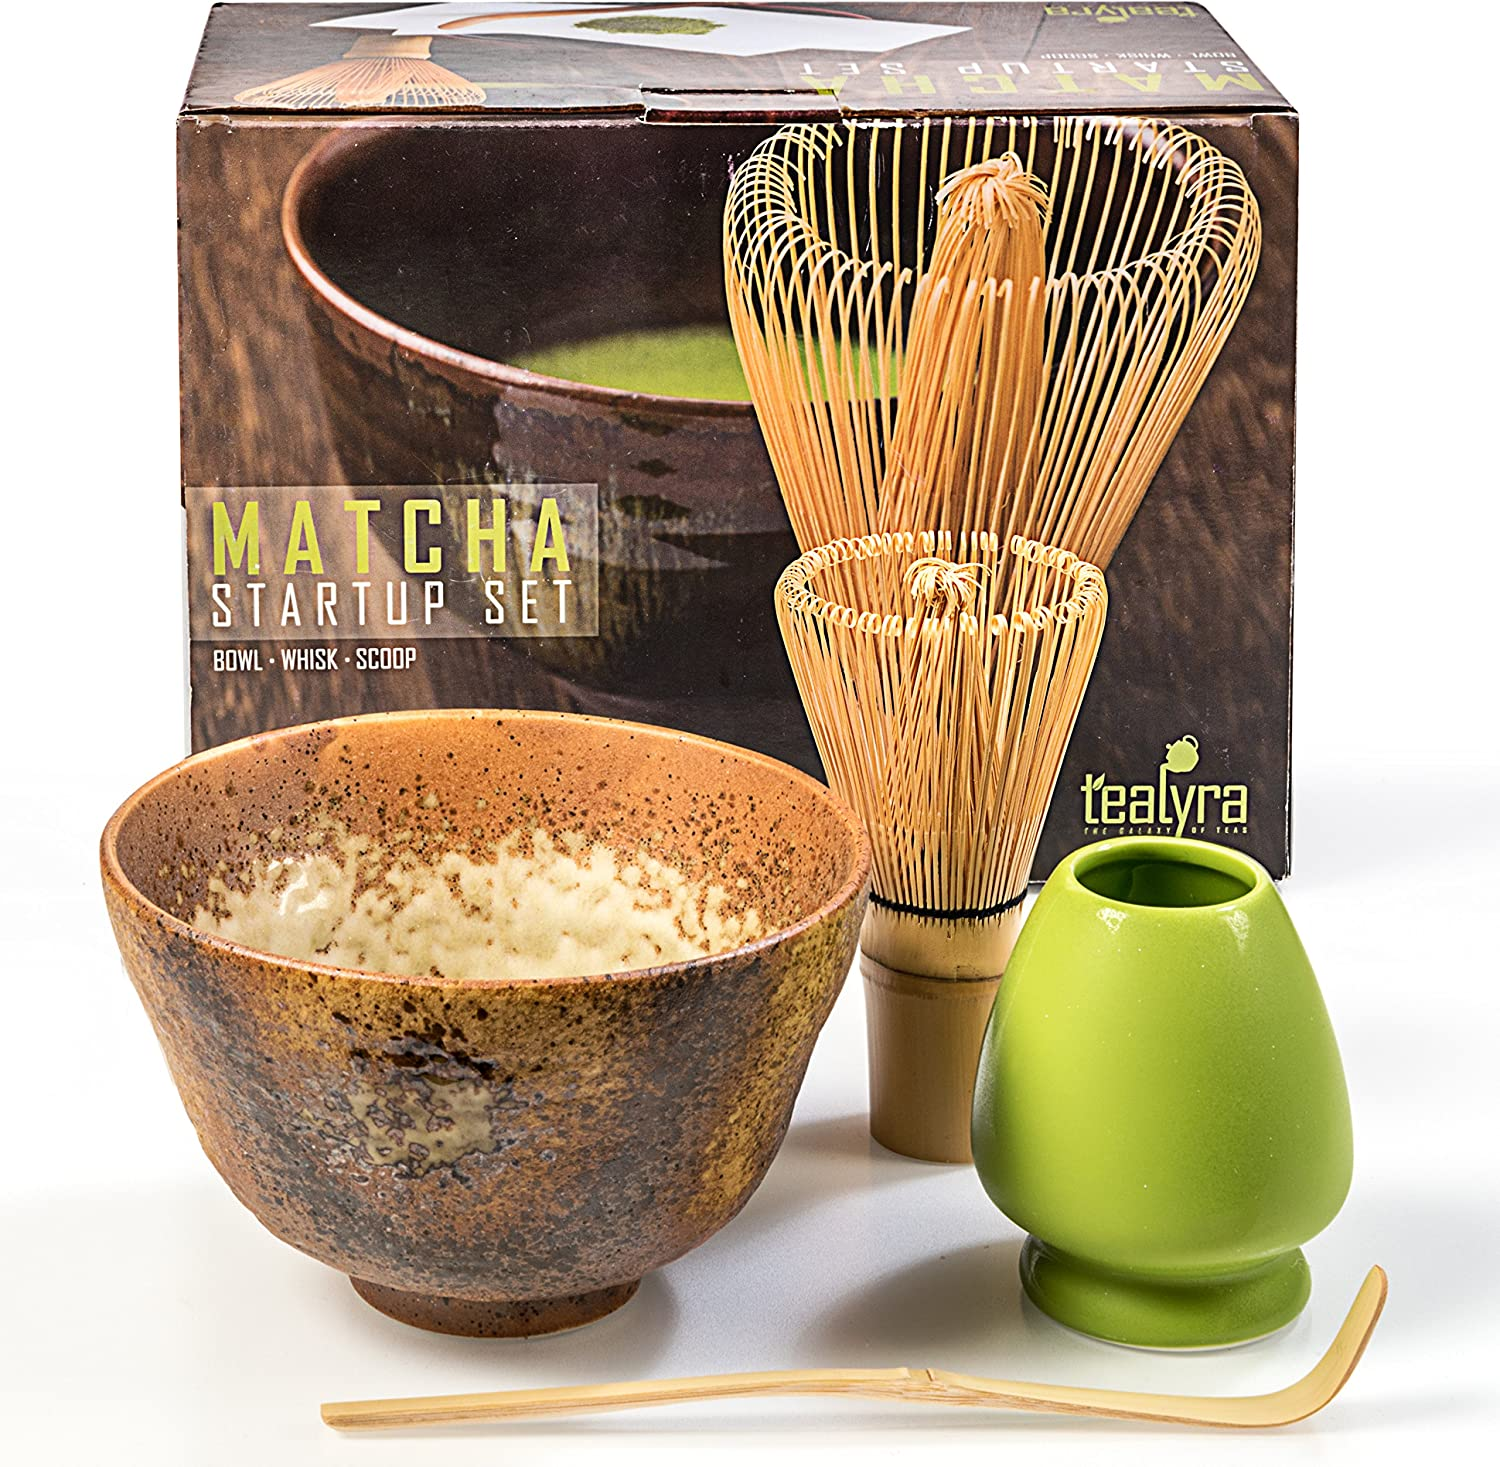 Gift Box Matcha Green Tea Gift Set Whisk Holder 4 Items Bamboo Whisk and Scoop Japanese Made Beige Bowl Start Up Kit Matcha Tealyra